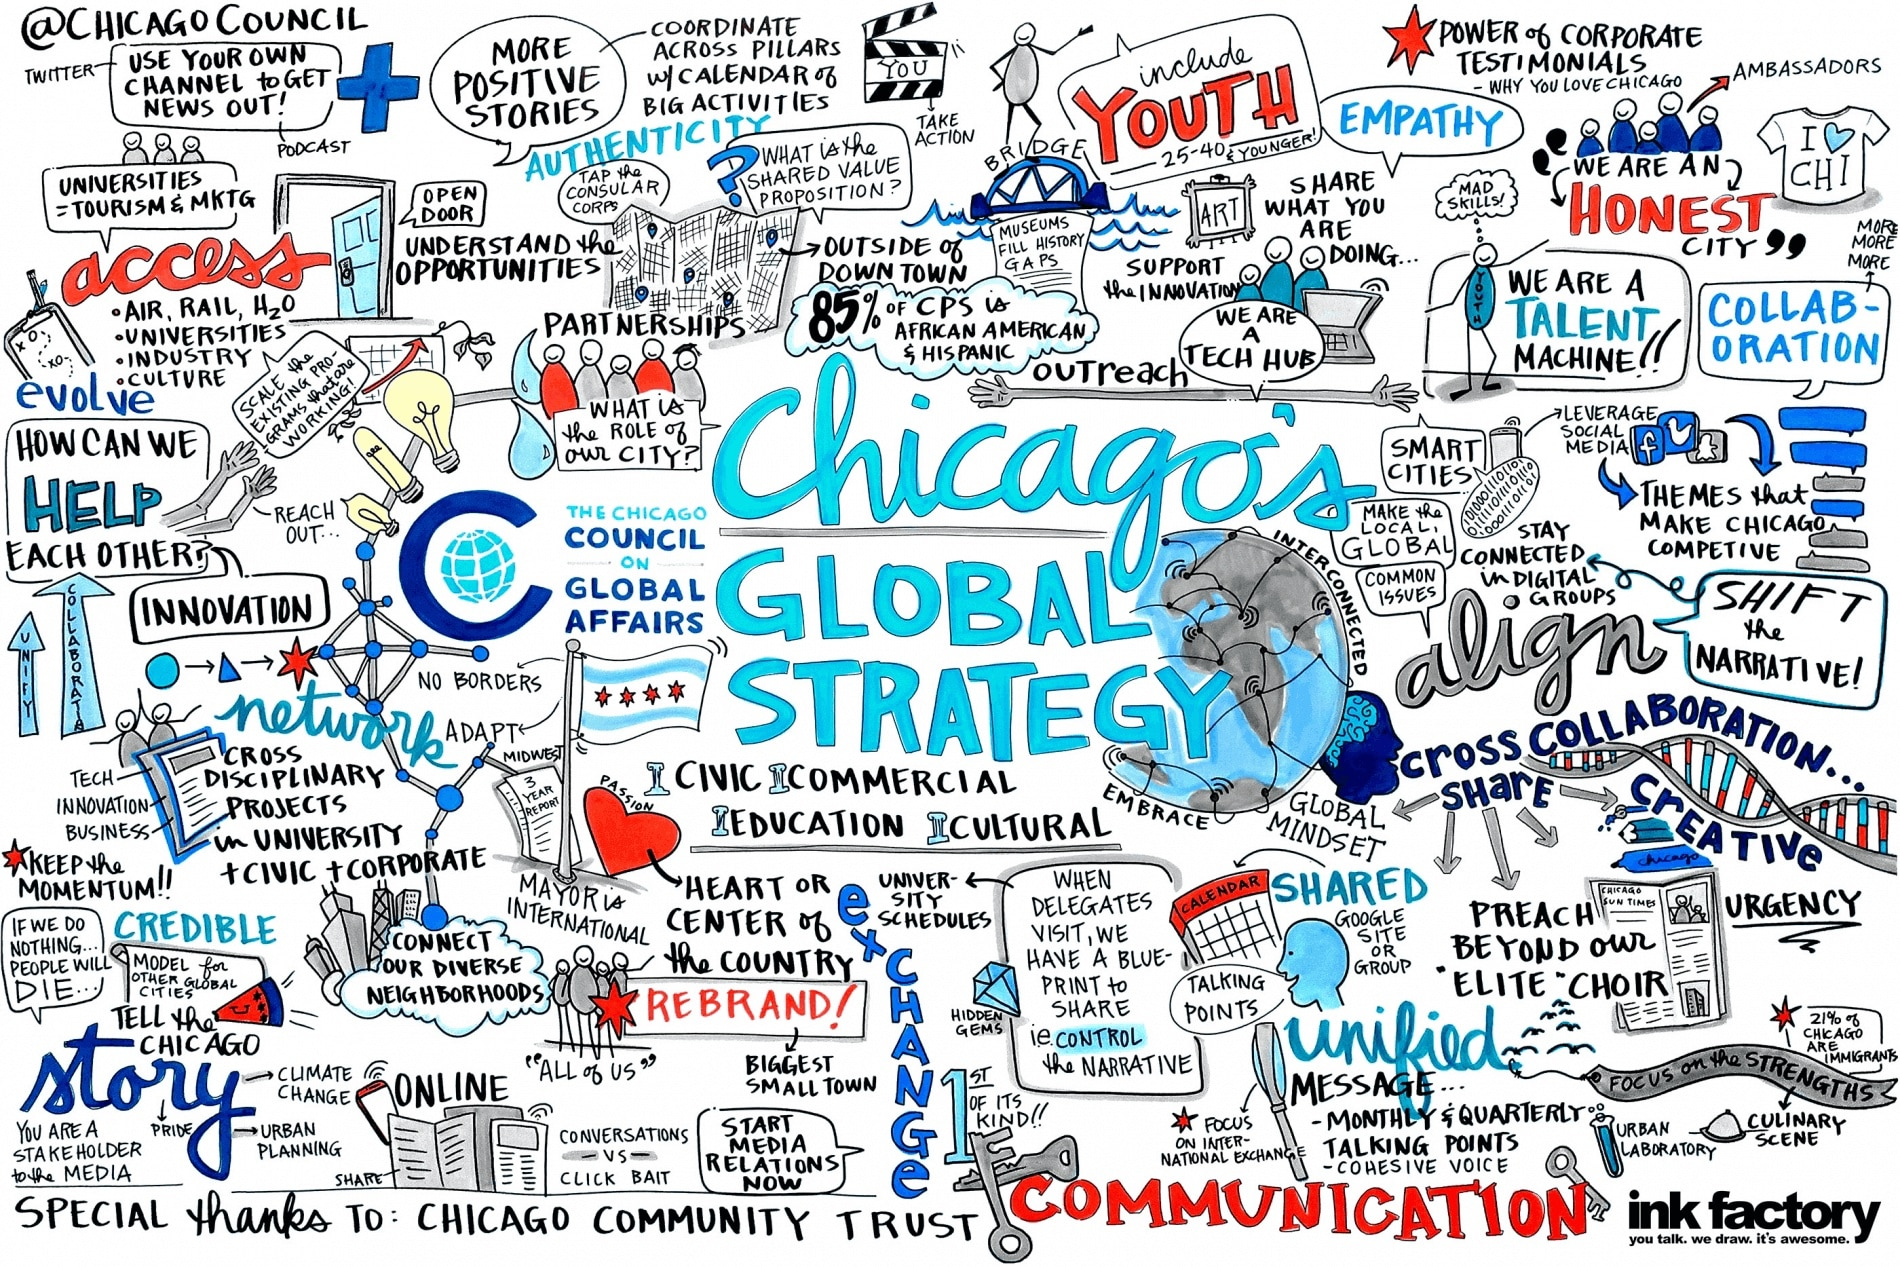 Visual notes created in a meeting using graphic facilitation techniques